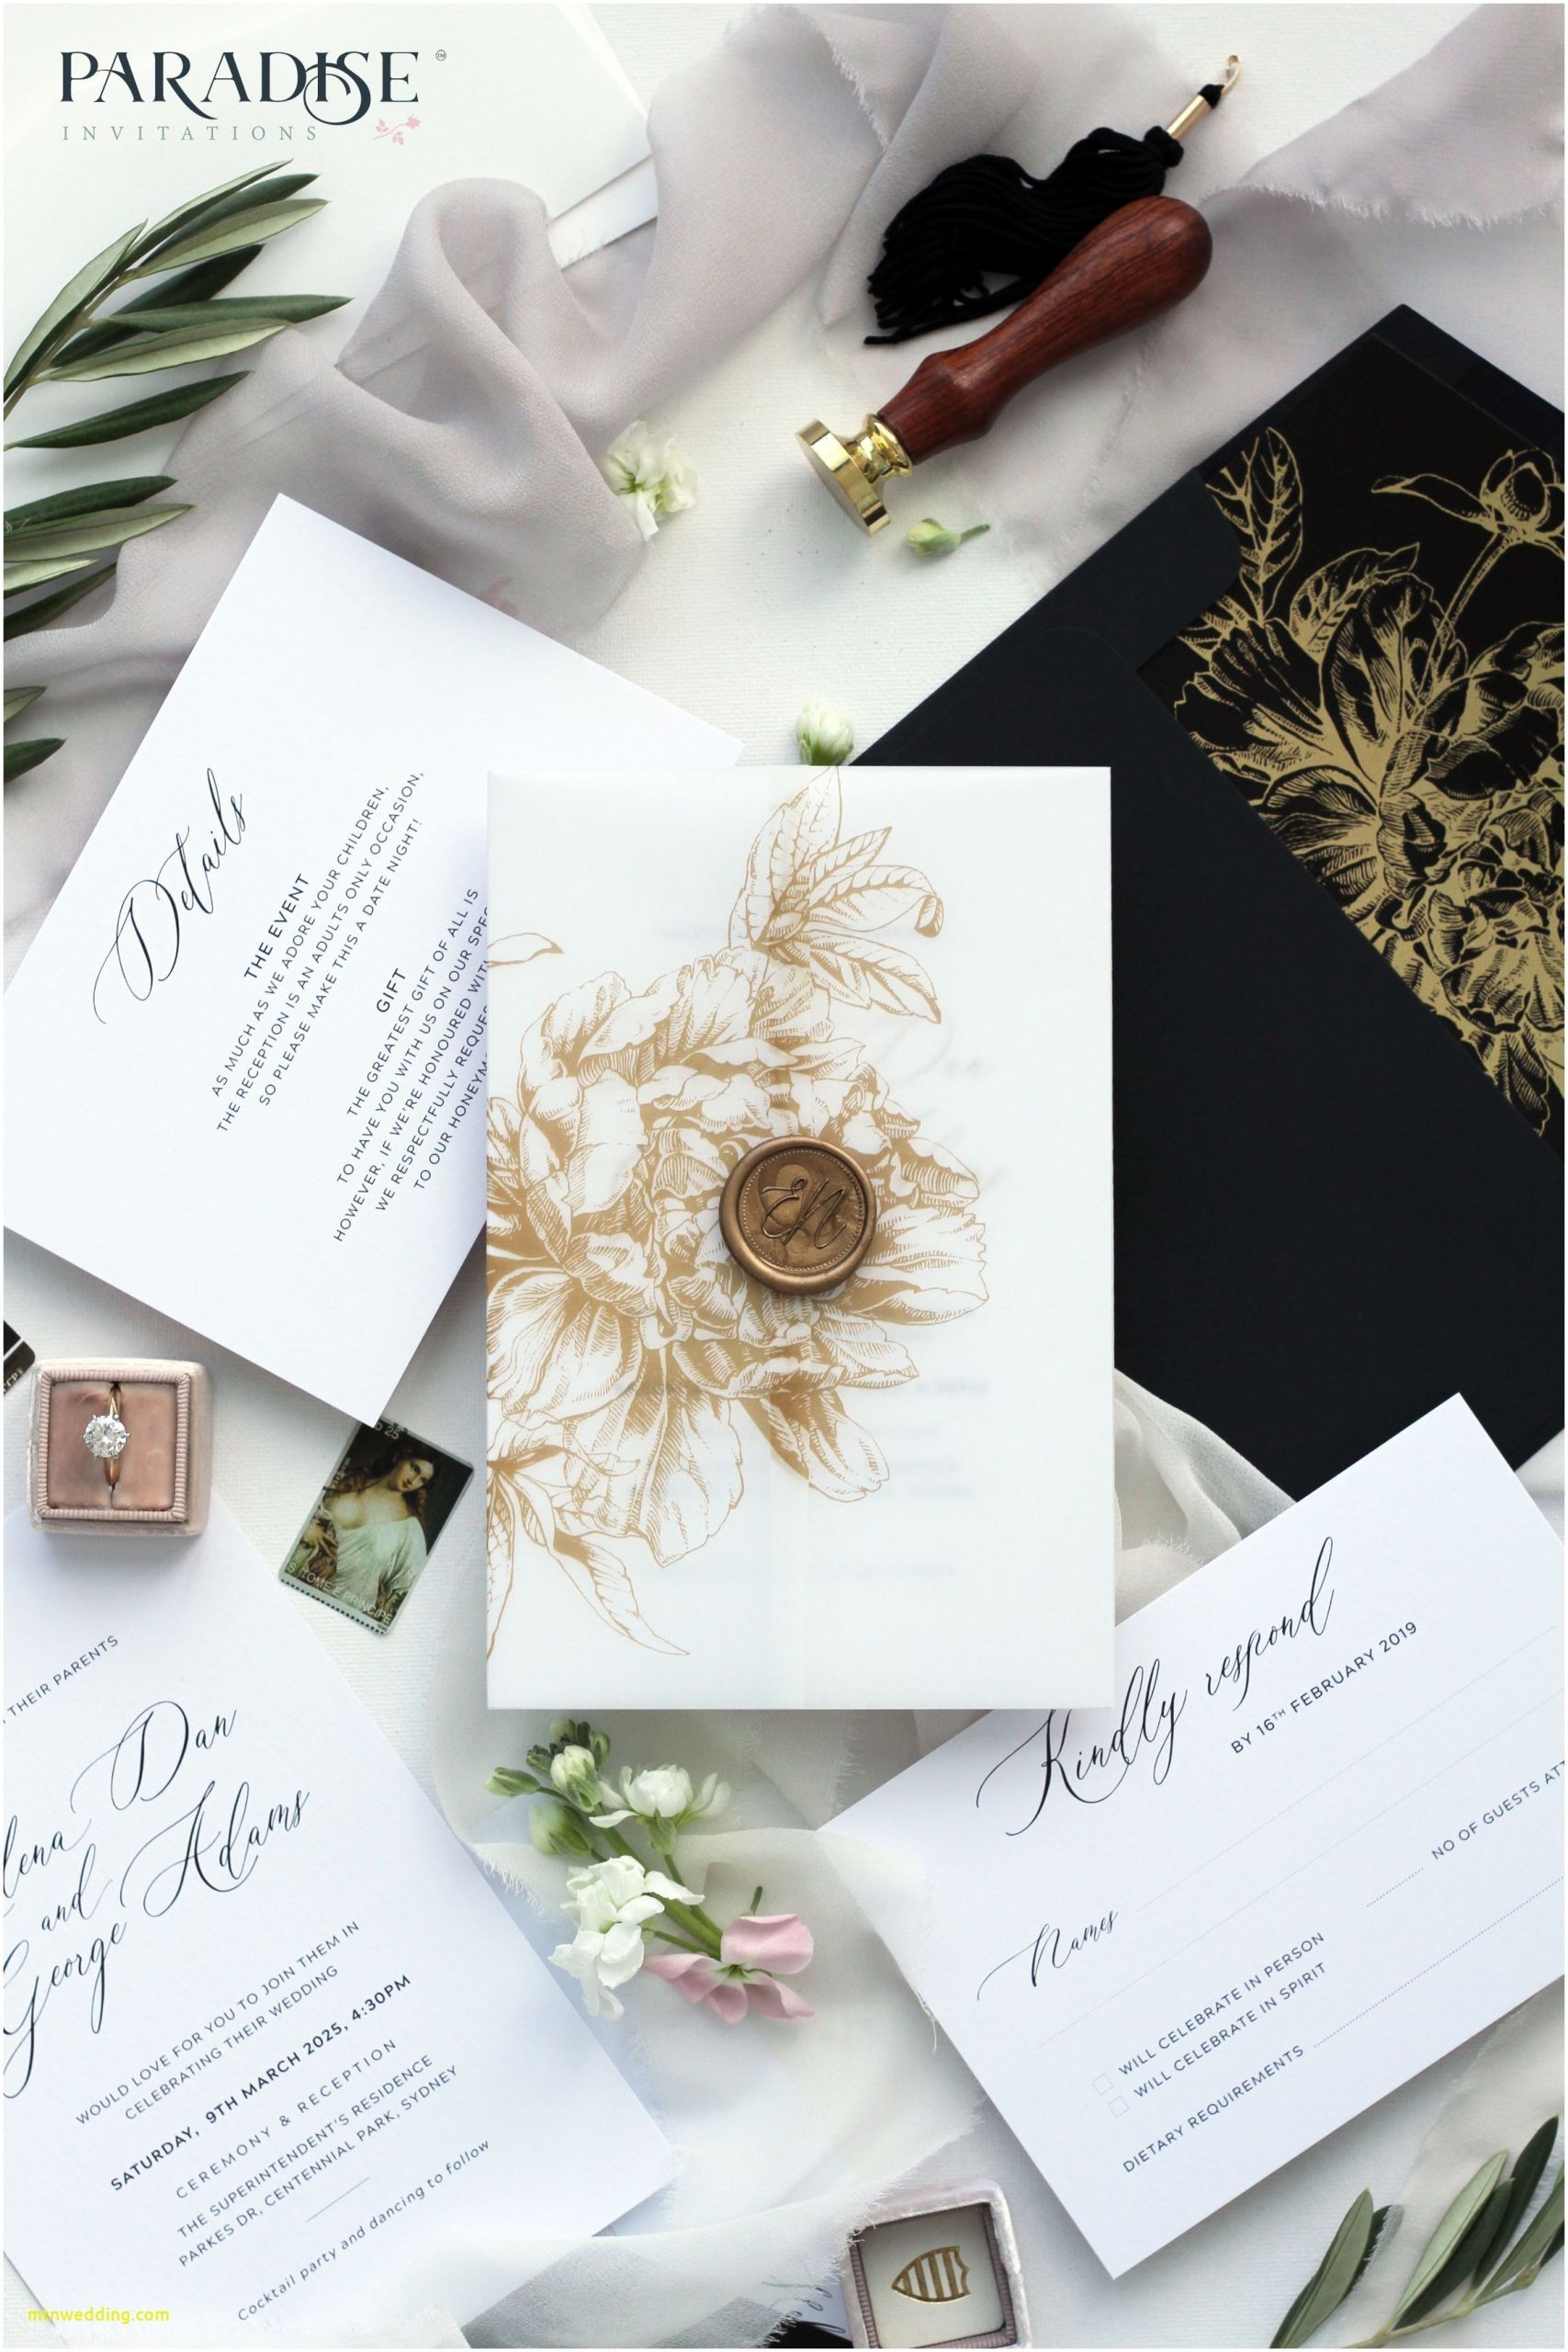 Awesome Part Of Wedding Invitation In 2020 Custom Wedding Cards Fun Wedding Invitations Pretty Wedding Invitations